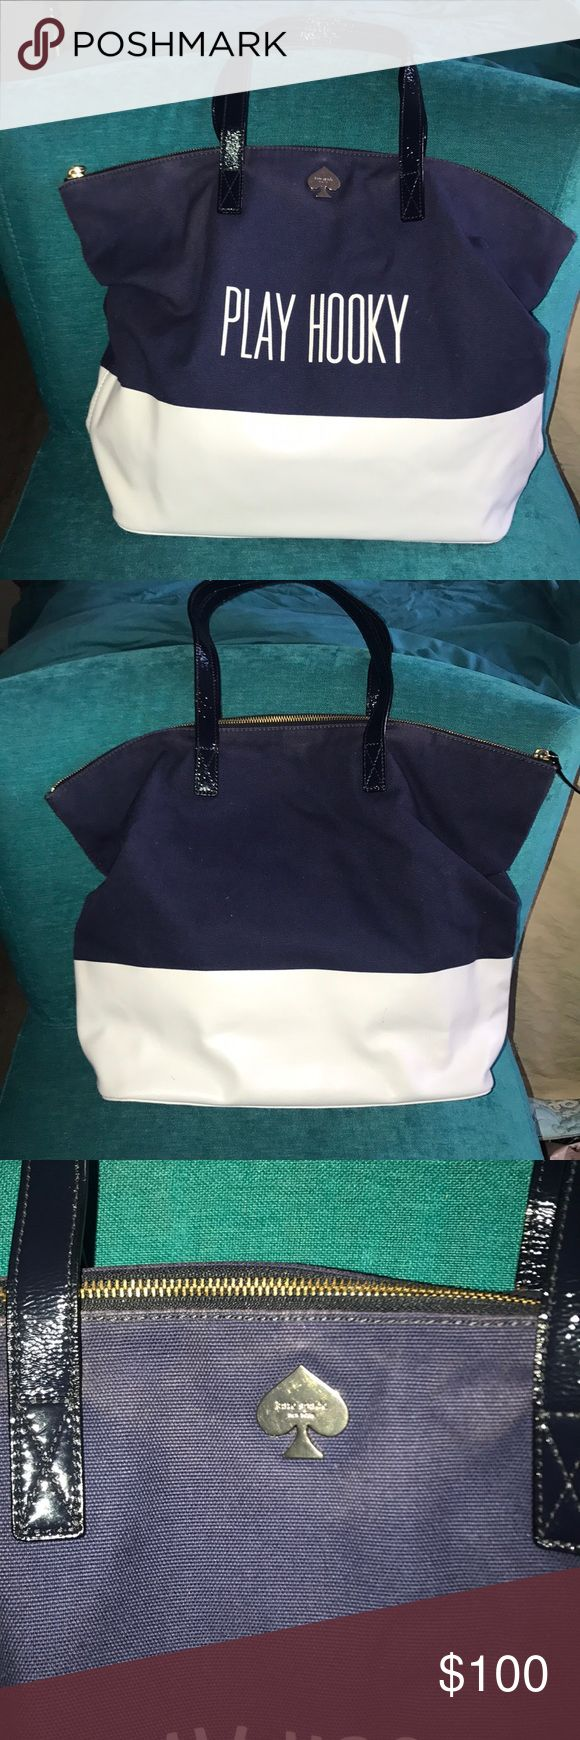 Kate Spade ♠️ Call to action Play Hooky tote Tote has top zip closure, with navy blue patent leather handles. Bottom is white leather, with navy blue cotton at top. Inside lining is yellow and white stripped polyester. Some signs of wear to the bottom corners of bag, refer to pics. May come out with white shoe polish. Bag is in very good condition and great for a day at the beach or use as a casual day of play. Measurements are 19x13x5.25 Kate Spade Bags Totes